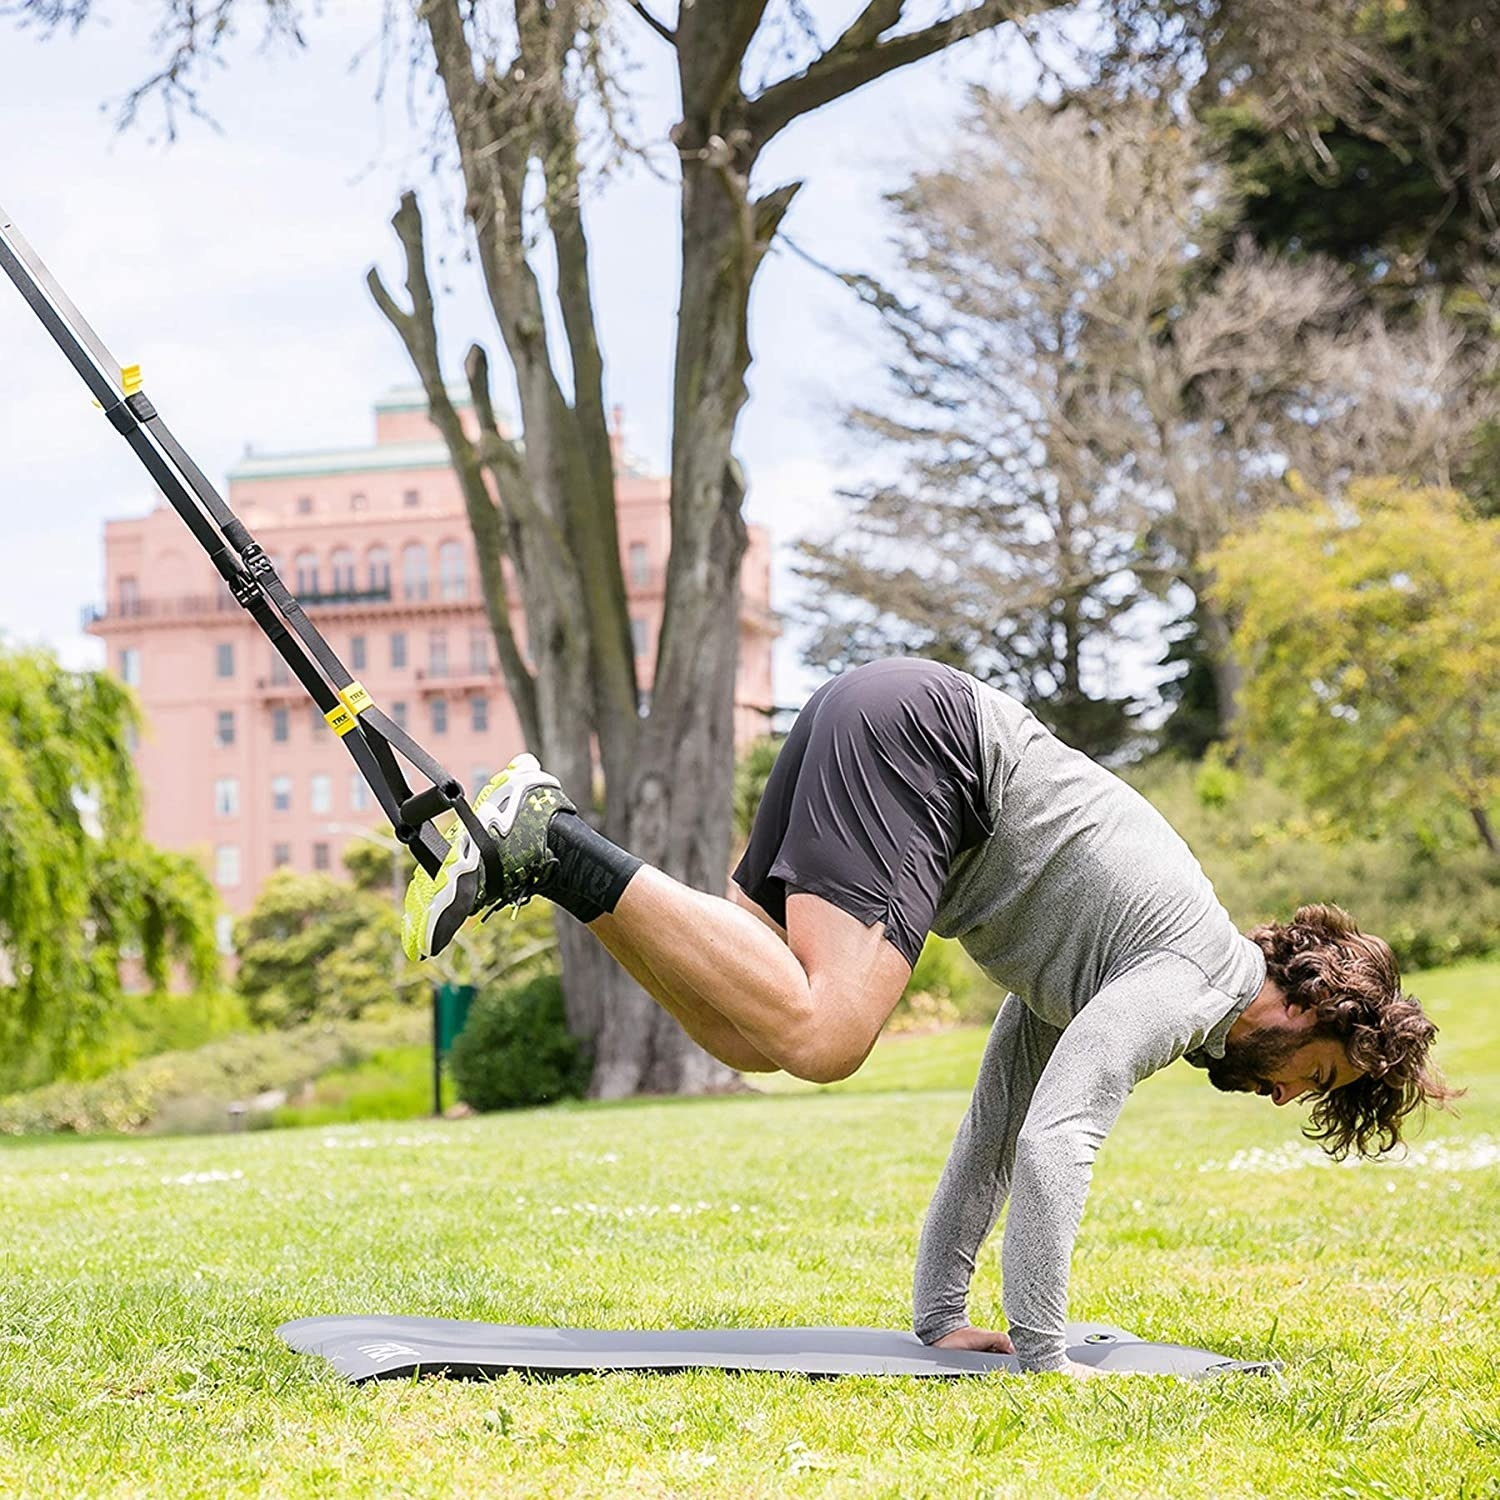 Model uses a TRX Suspension Training System to do a full-body move outside